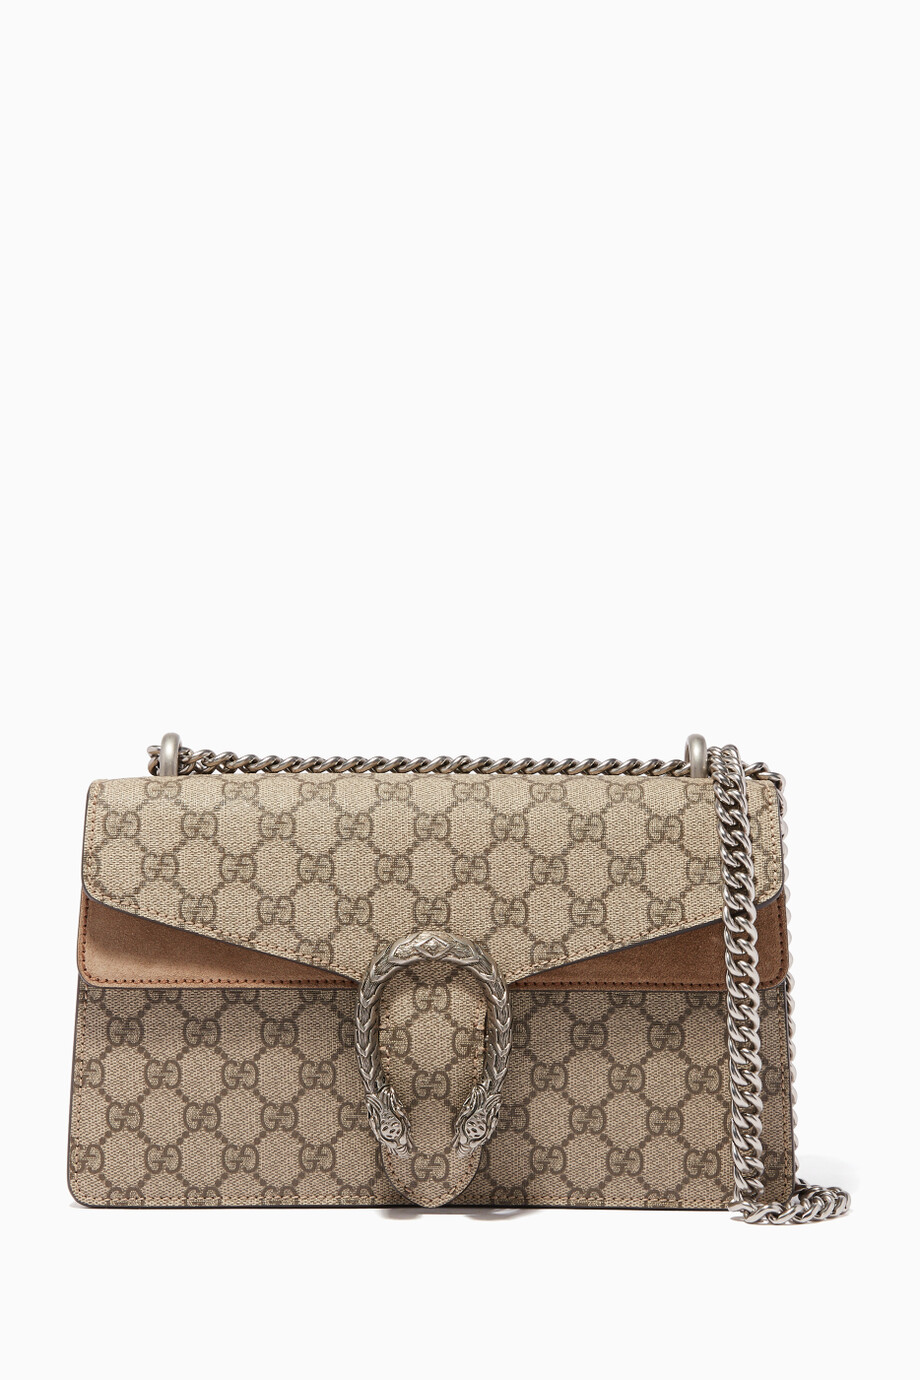 71692ec499c6 Shop Gucci Neutral Beige Small Dionysus GG Shoulder Bag for Women ...